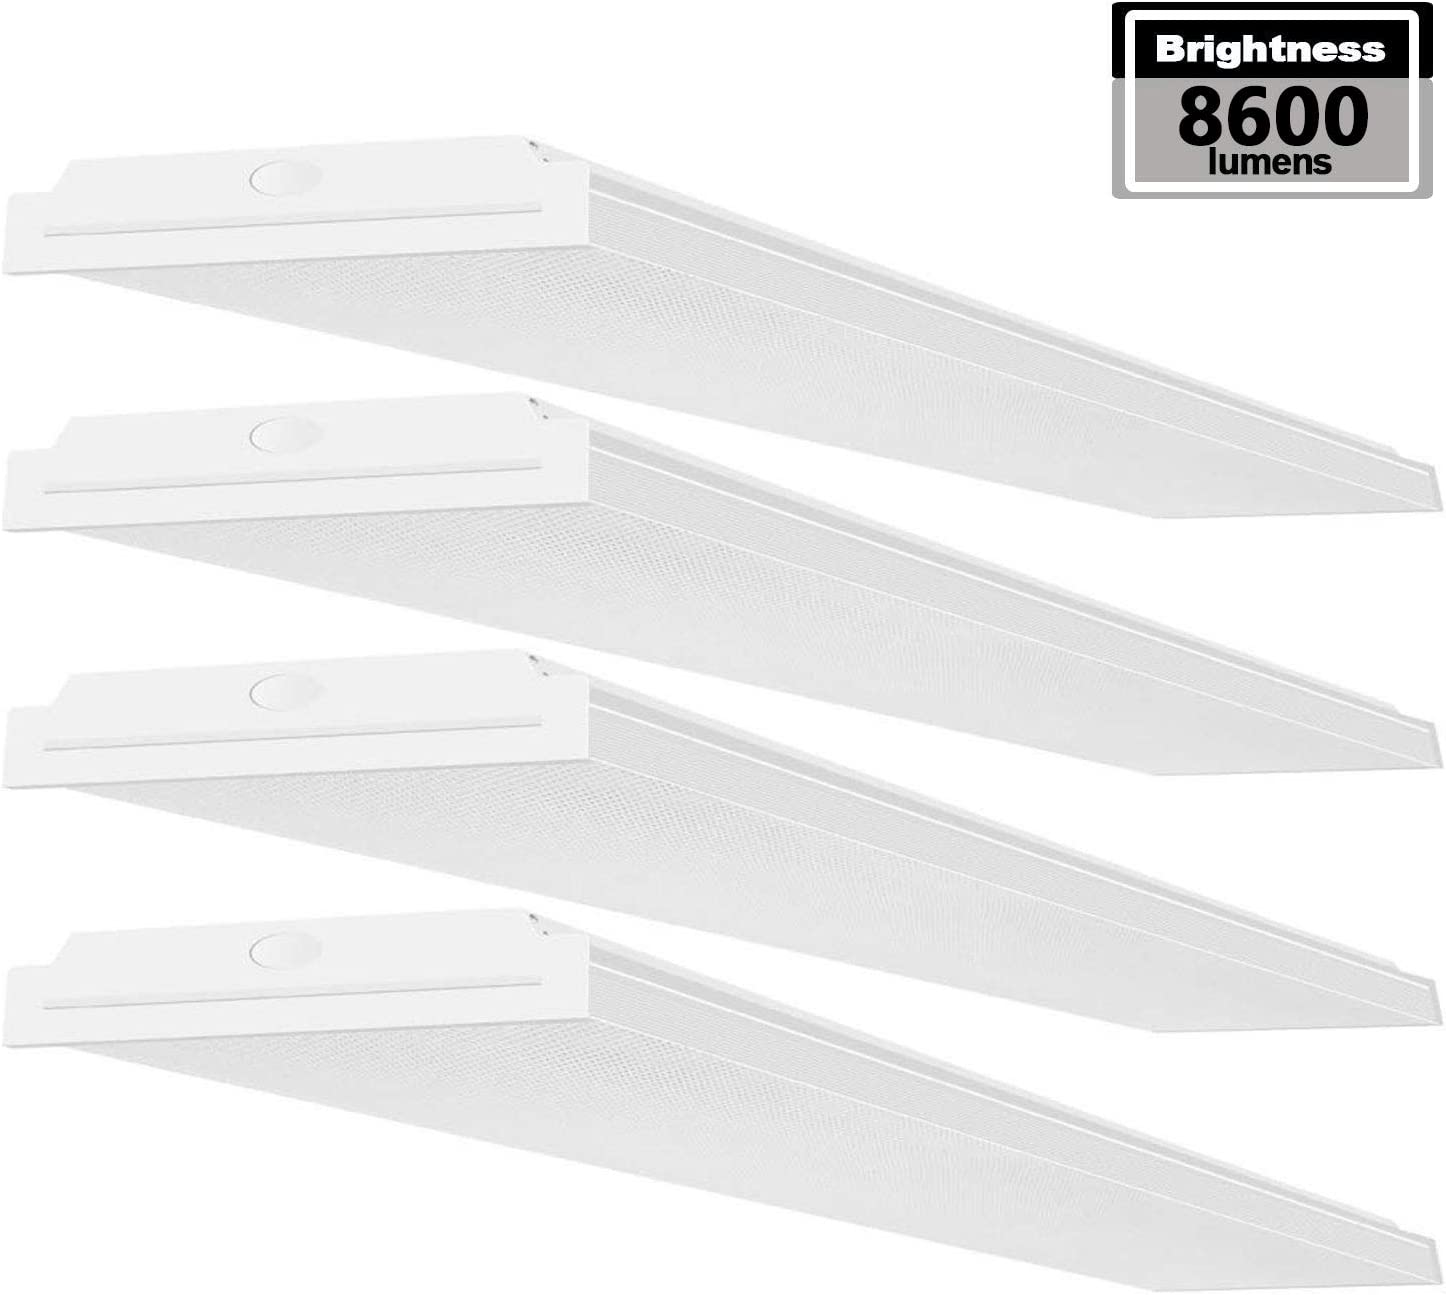 AntLux 72W LED Office Lights Ceiling 4FT LED Wraparound Light, 8600 Lumens, 4000K Neutral White, 4 Foot Flush Mount Wrap Shop Light Fixtures for Garage Workshop, Fluorescent Light Replacement, 4 Pack